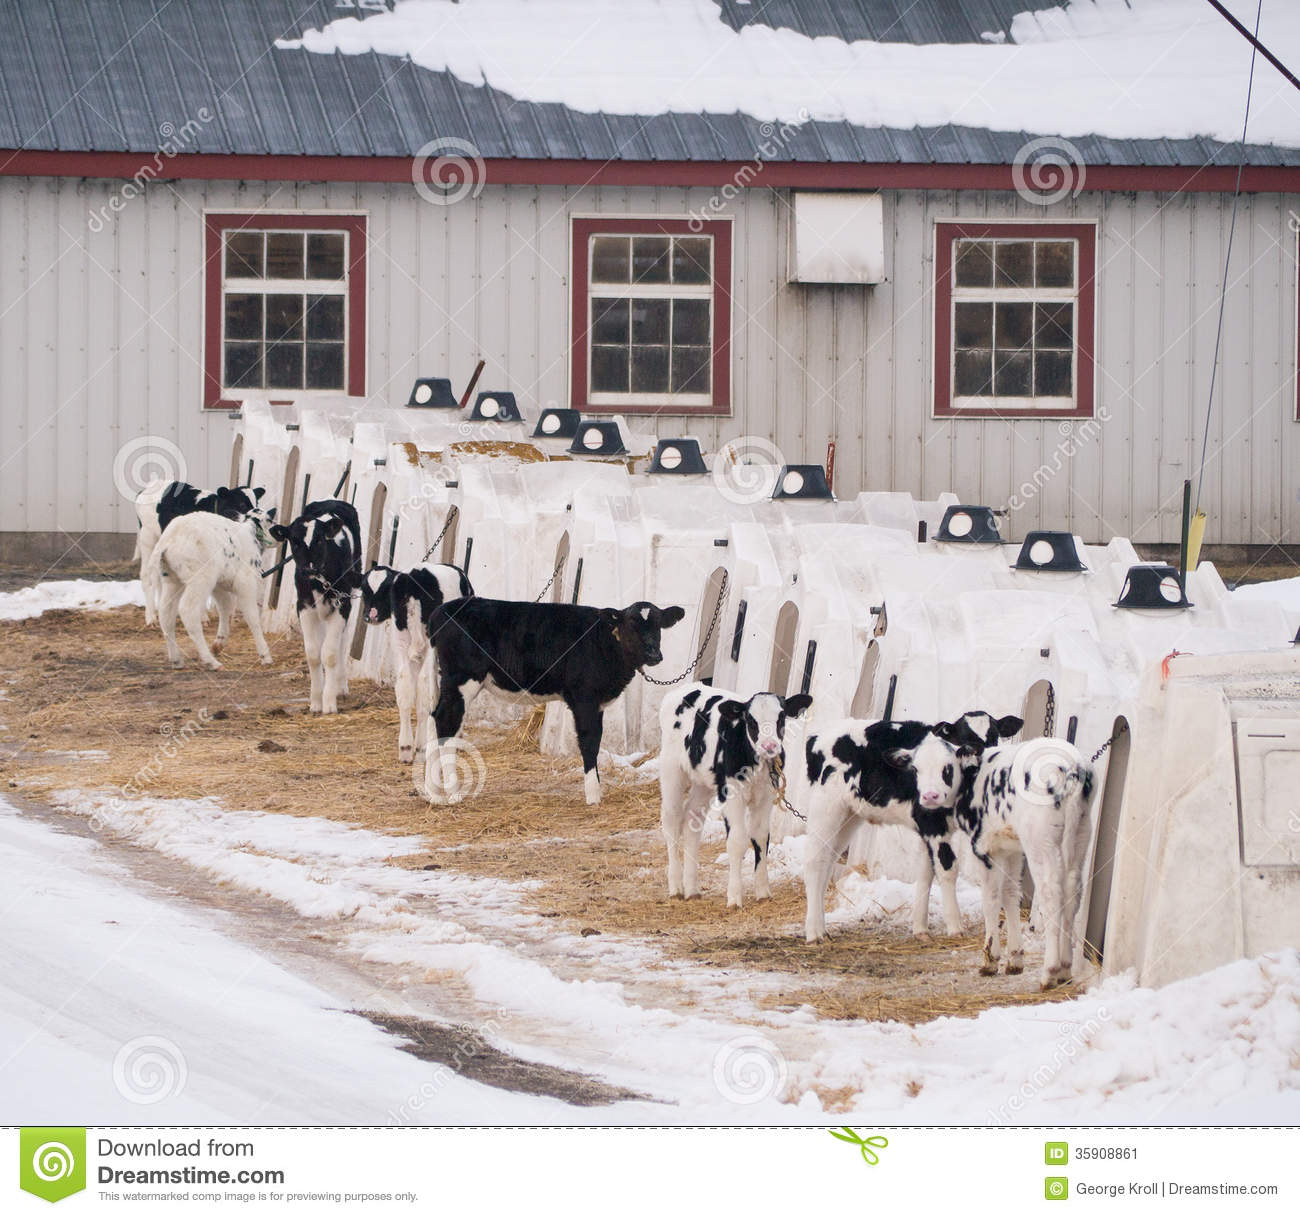 Calves in shelters